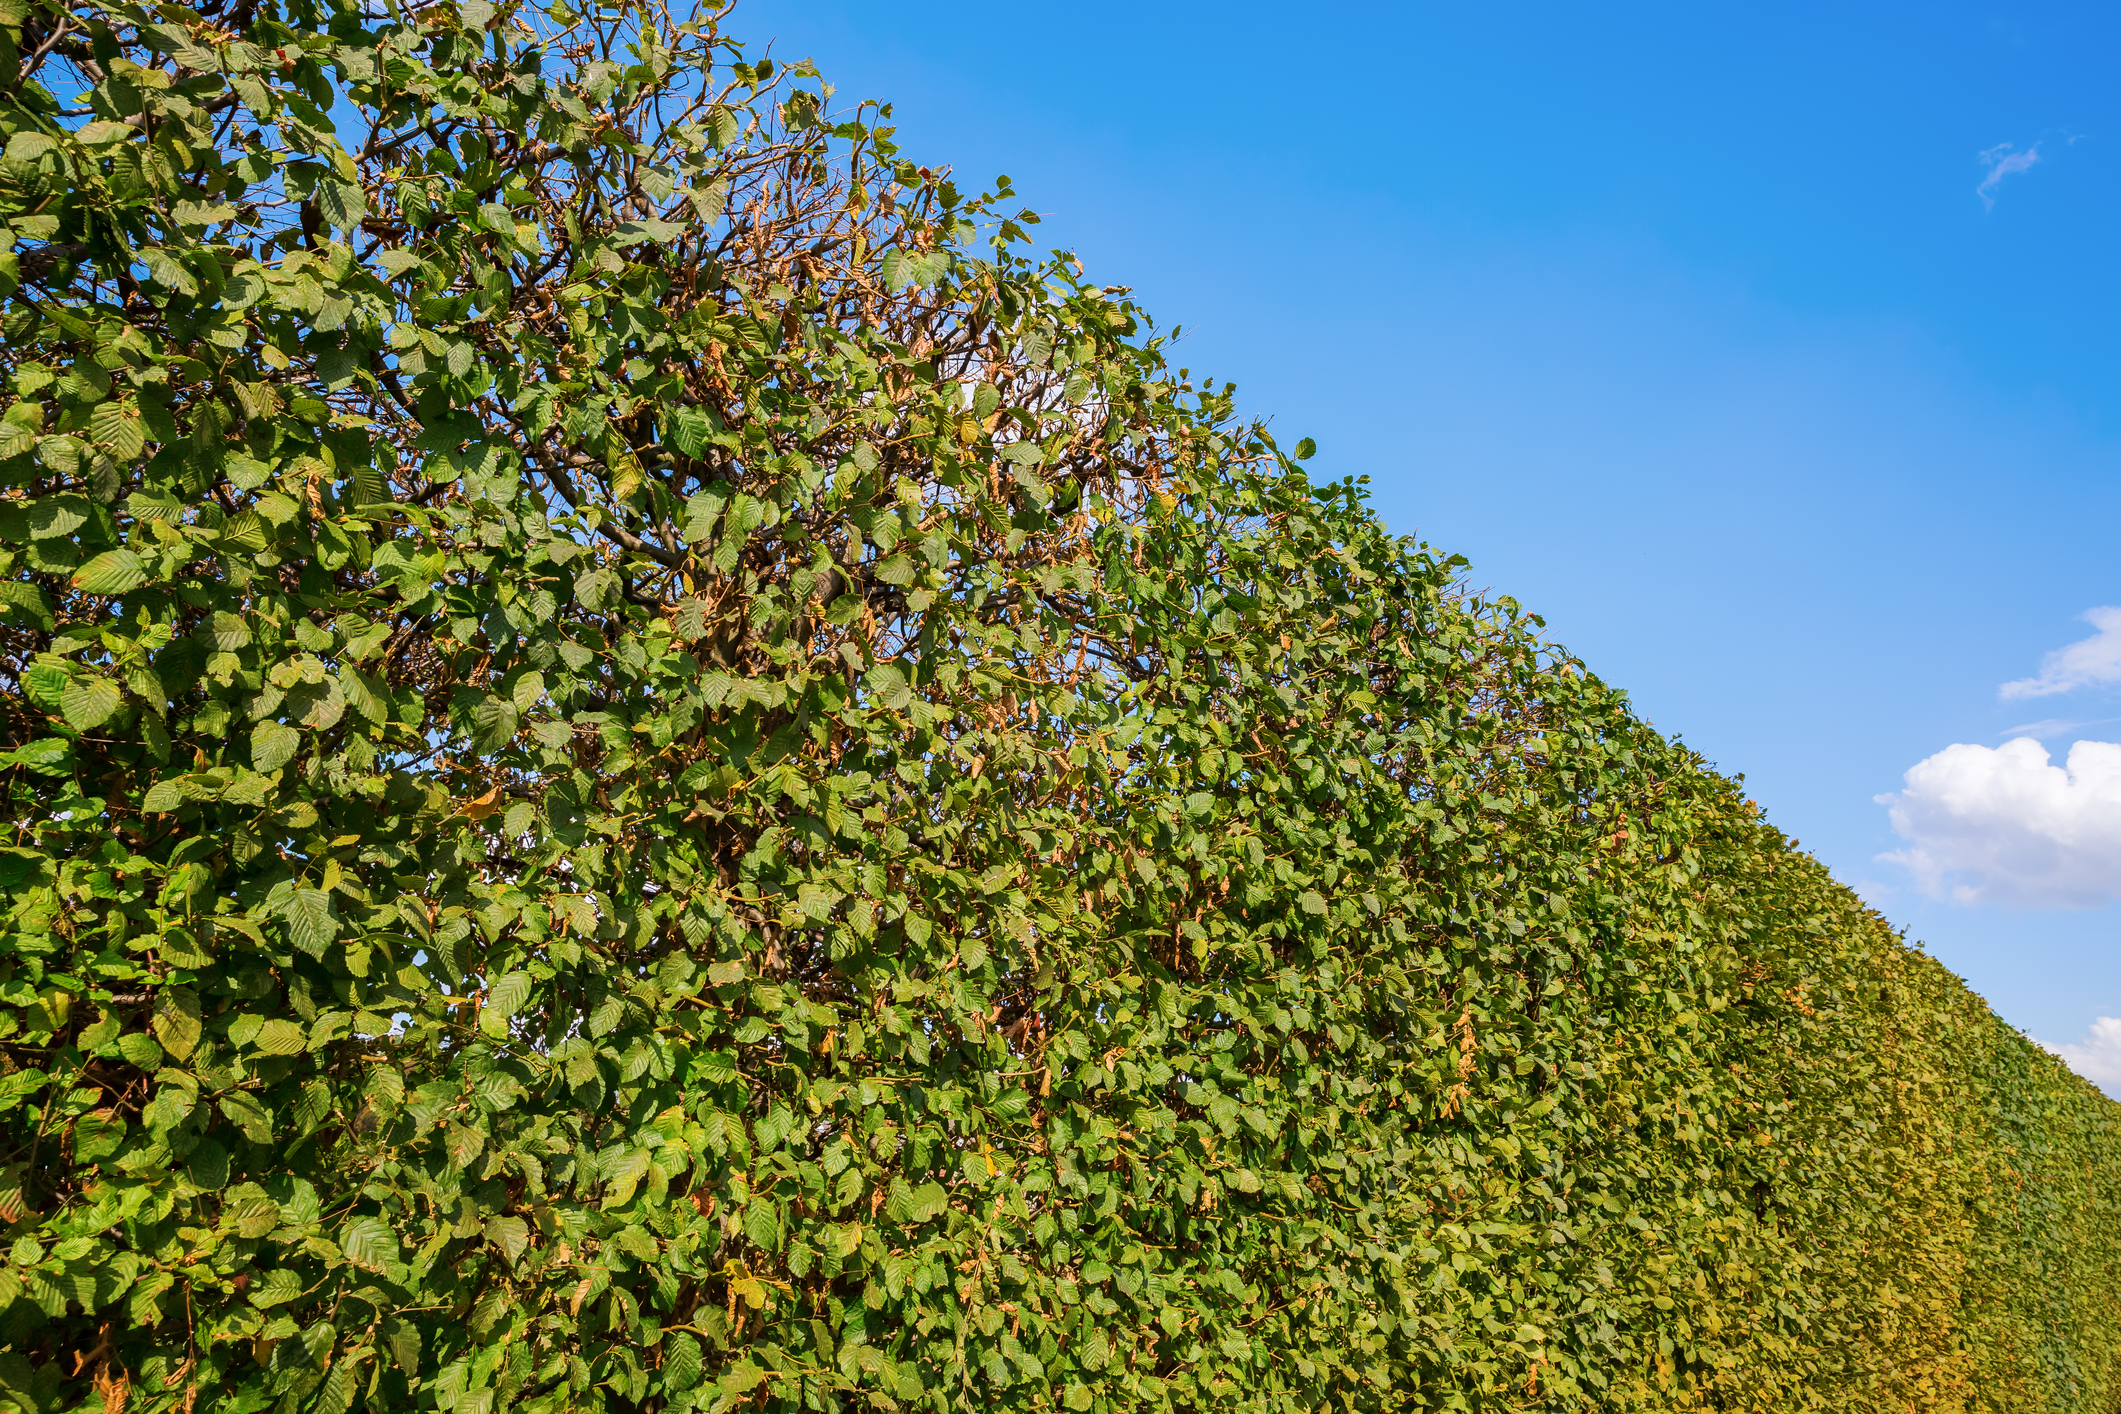 Hedge Cutting - Hedge maintenance, trimming and topping, hedge removal and more.